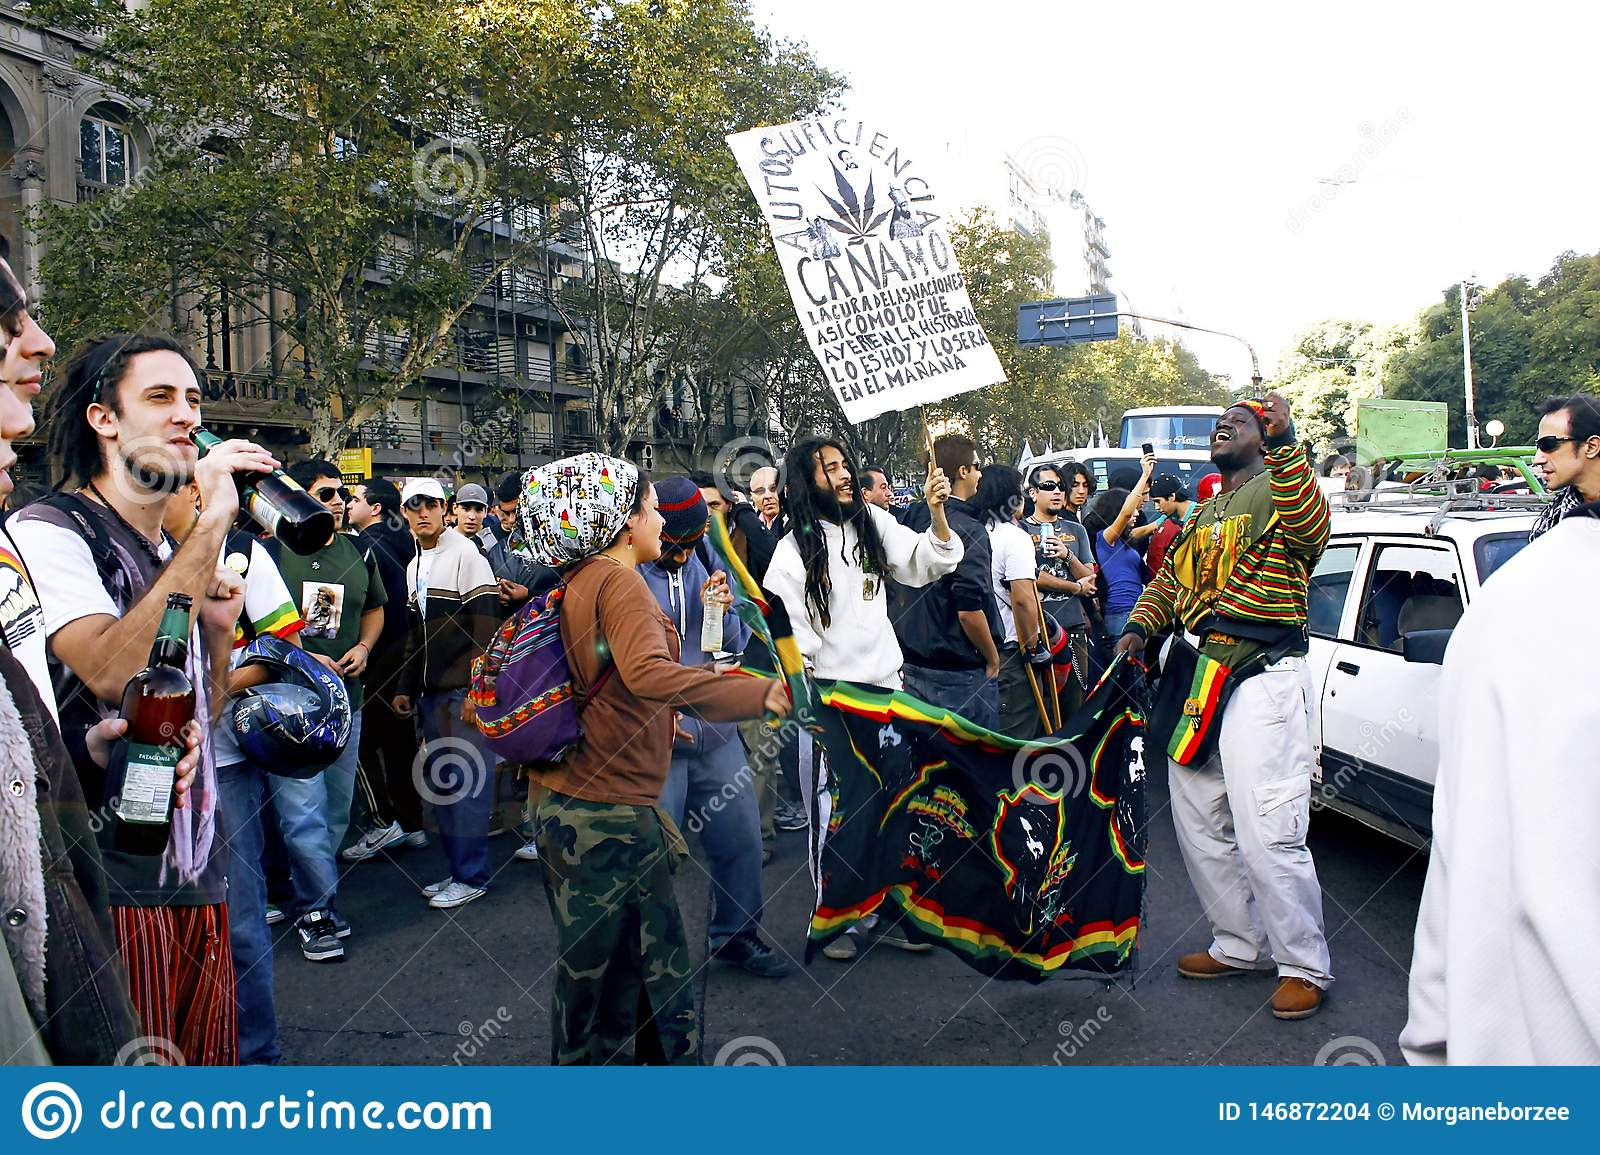 Young people protesting in the streets for the legalization of cannabis